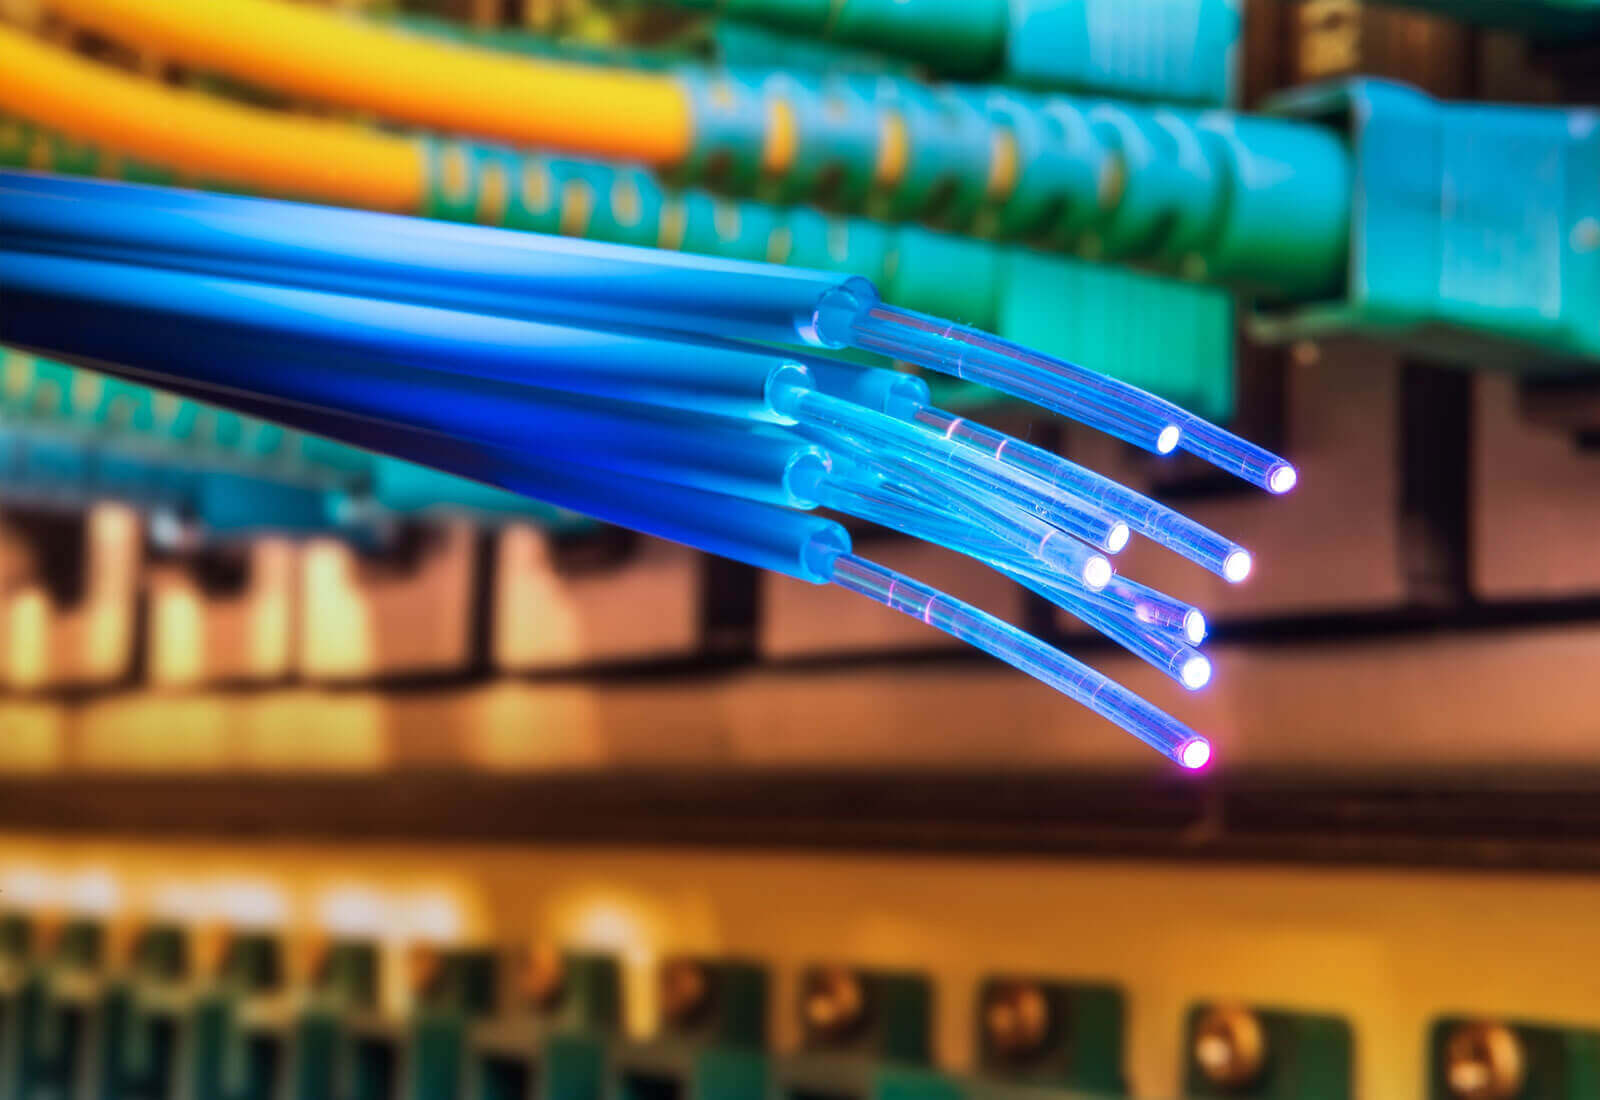 Comcast may consider killing data caps, ISPs could learn from present experience